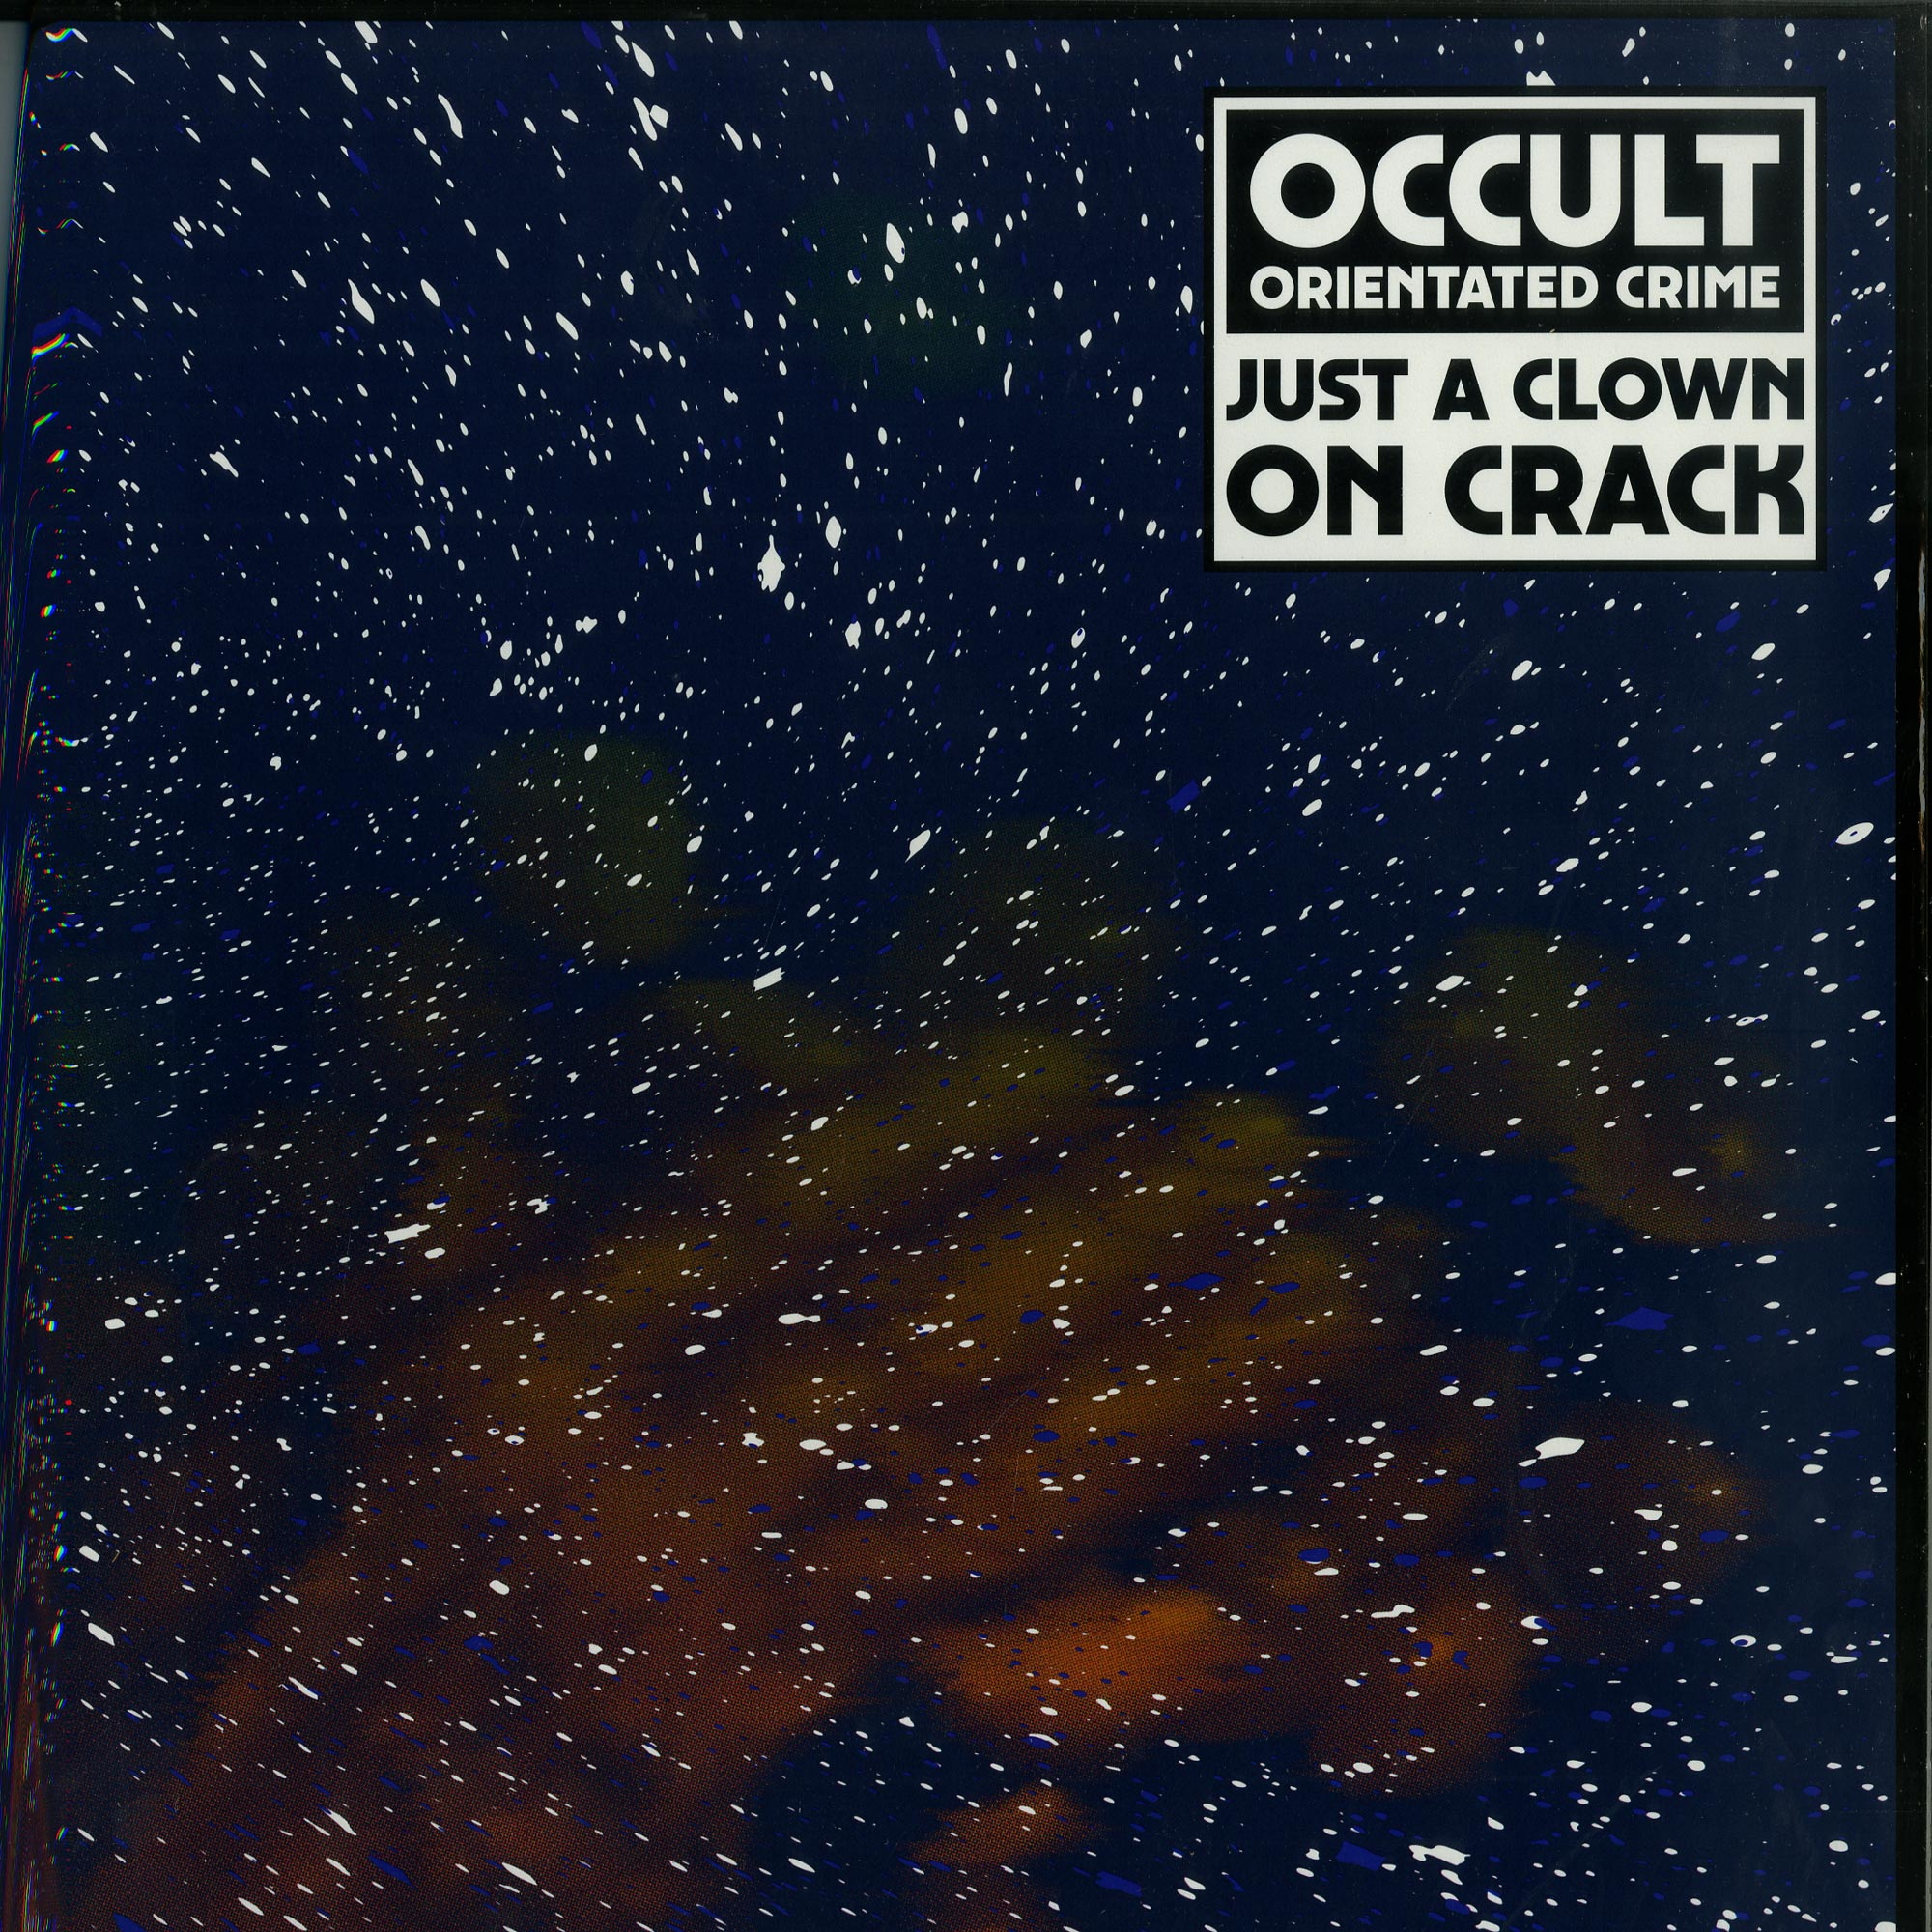 Occult Orientated Crime  - JUST A CLOWN ON CRACK